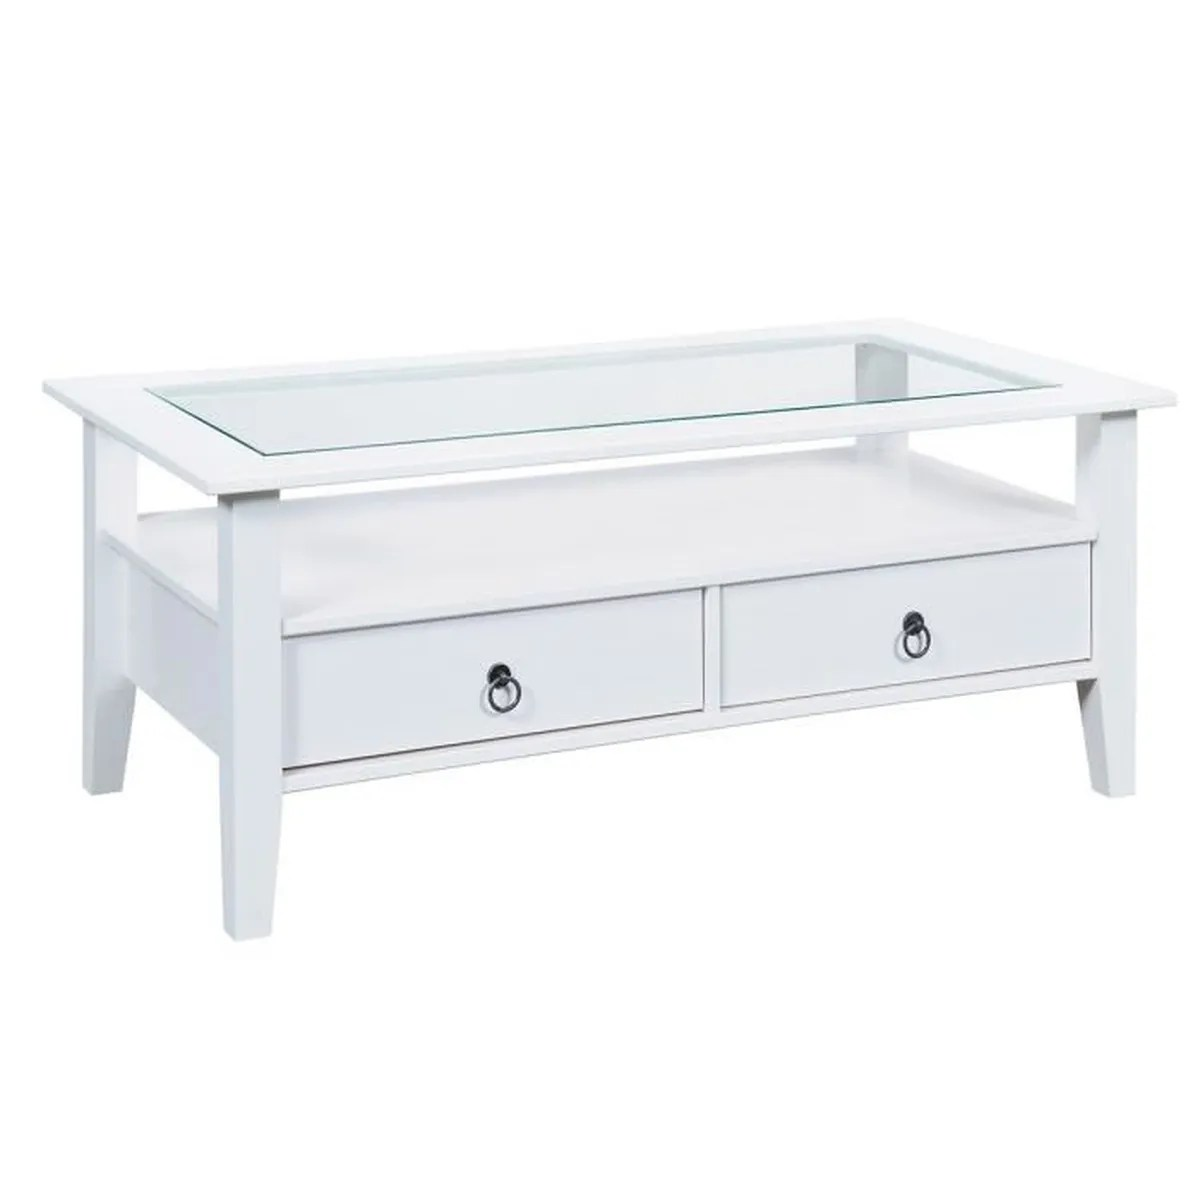 Table Rectangulaire Blanche Natur Table Basse Rectangulaire Blanc Achat Vente